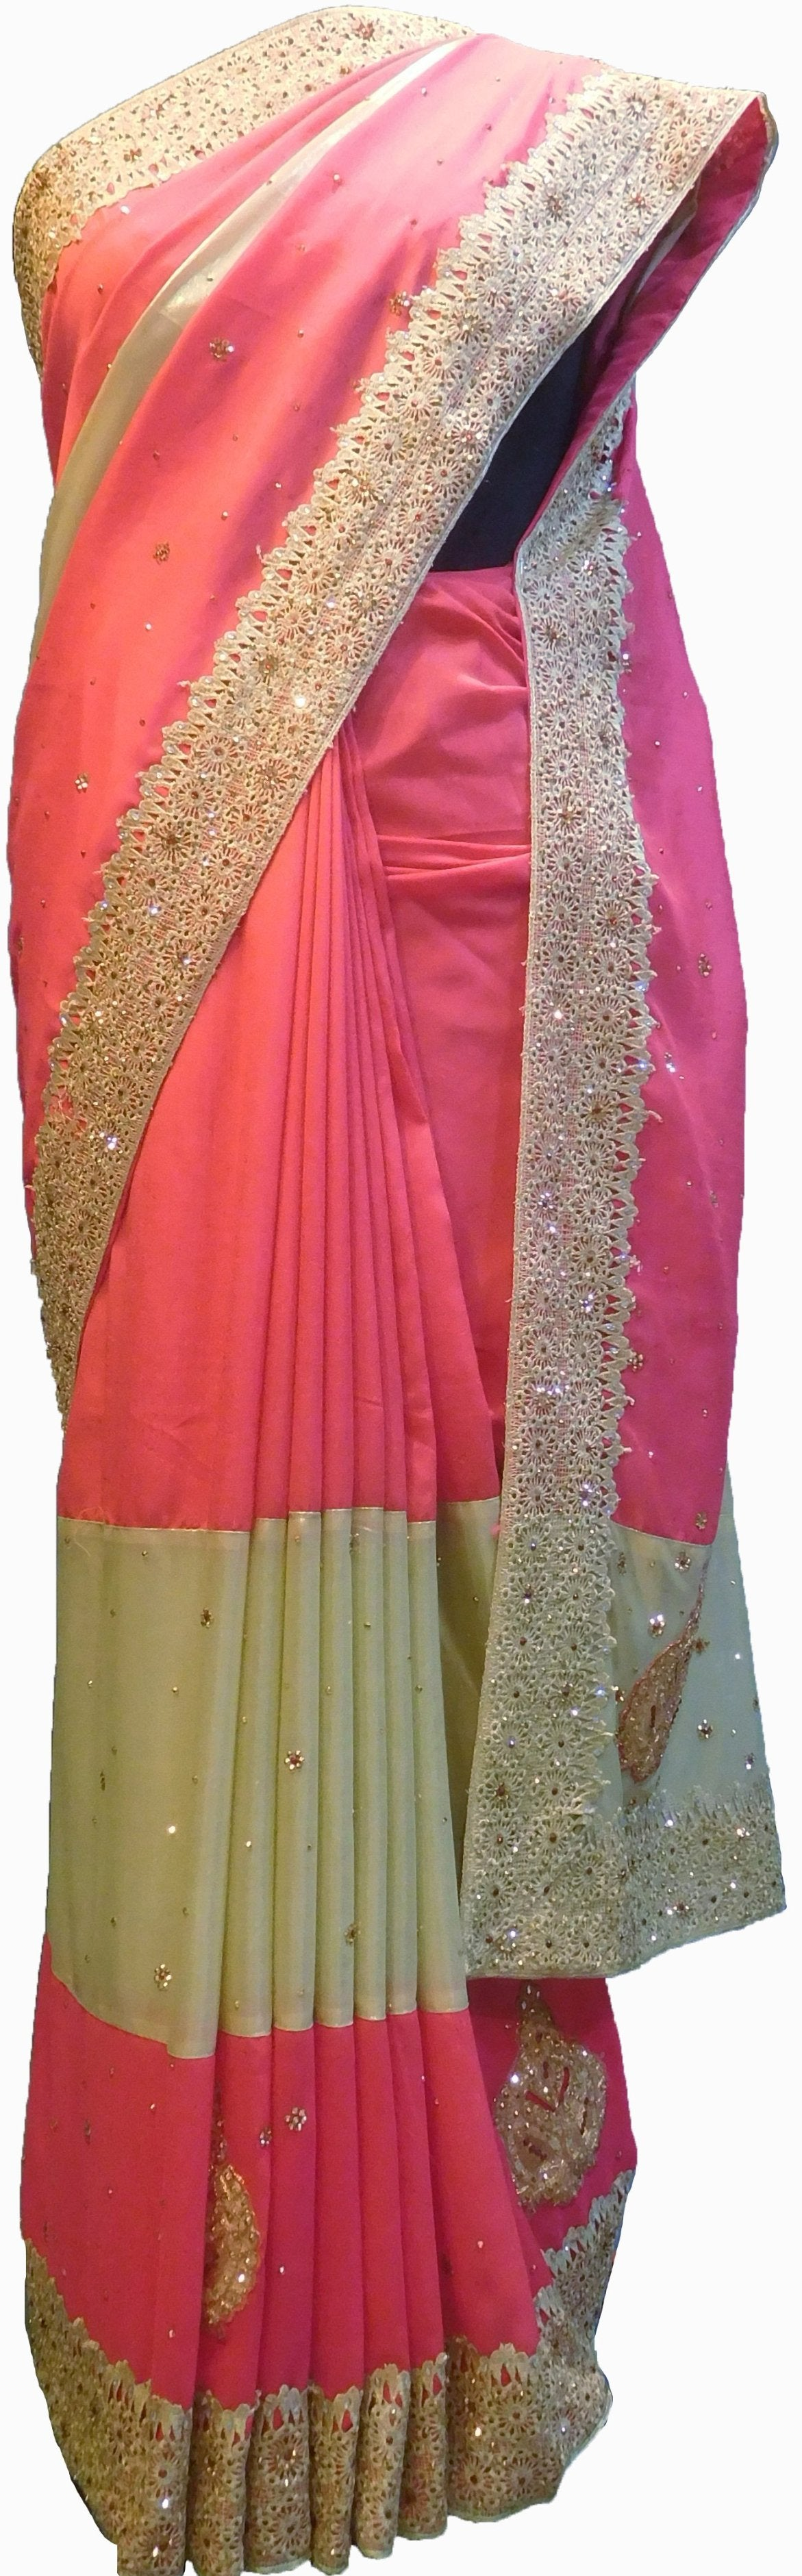 SMSAREE Pink & Cream Designer Wedding Partywear Georgette Cutdana Zari Thread & Stone Hand Embroidery Work Bridal Saree Sari With Blouse Piece F178